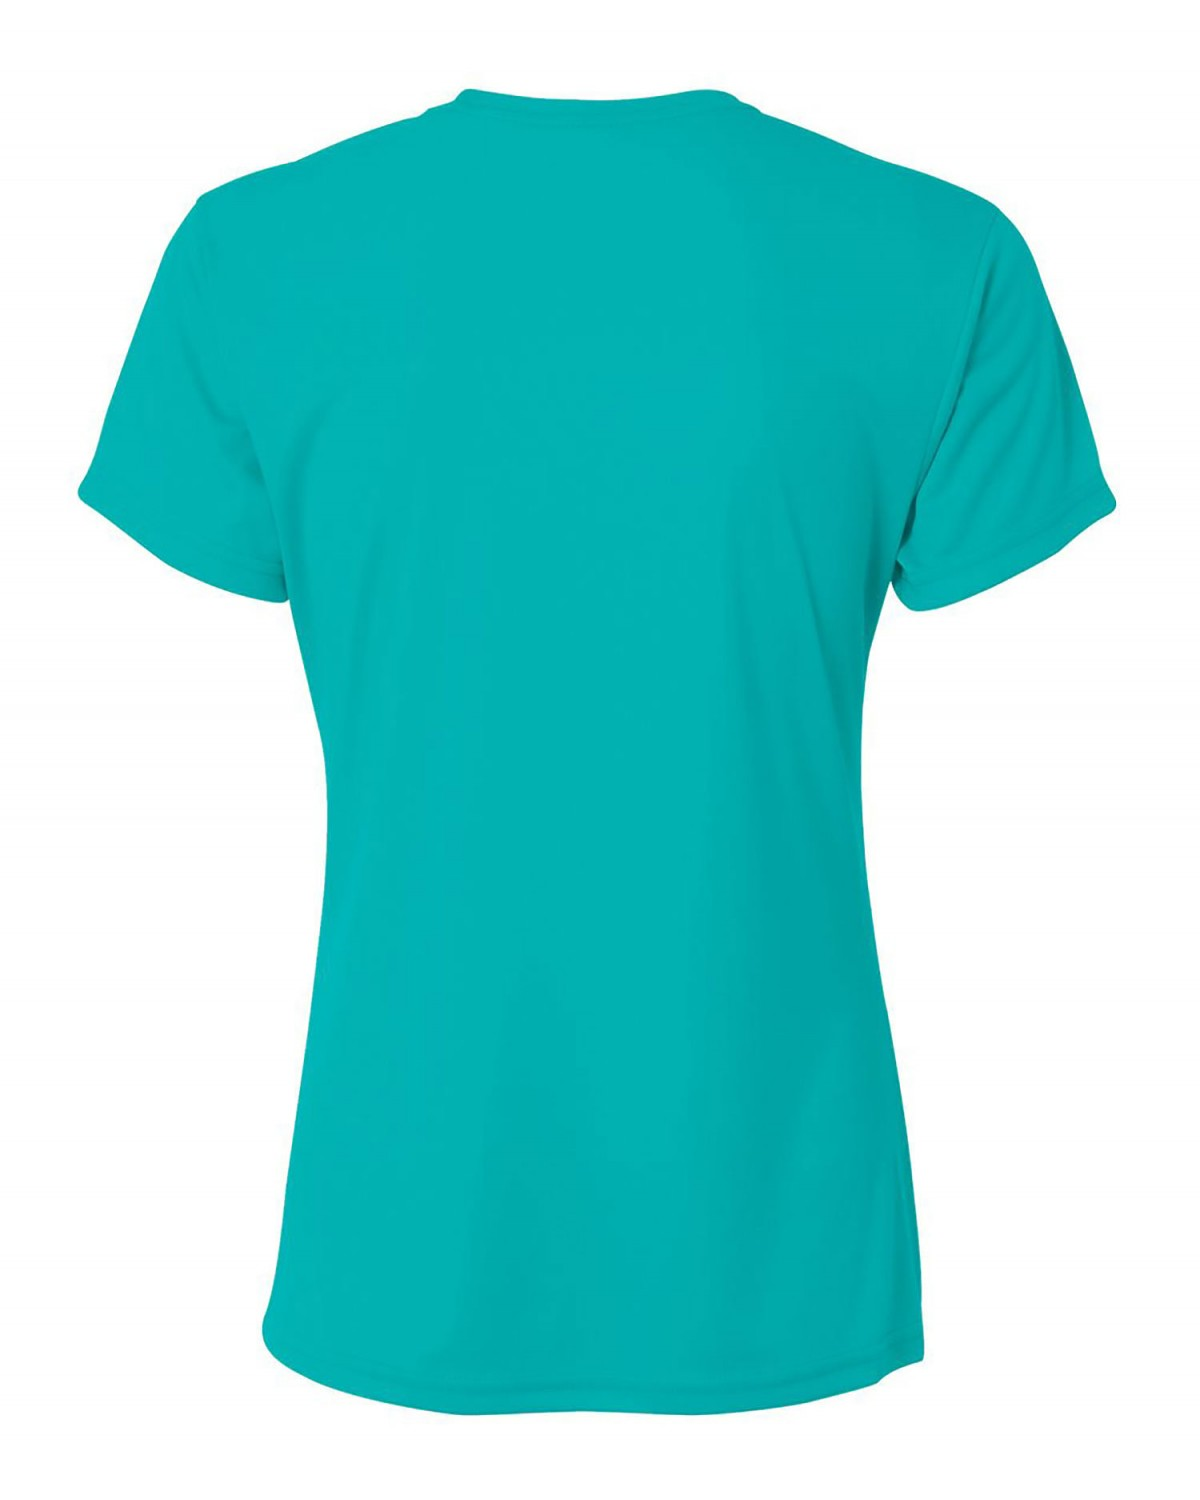 A4NW3201 A4 TEAL